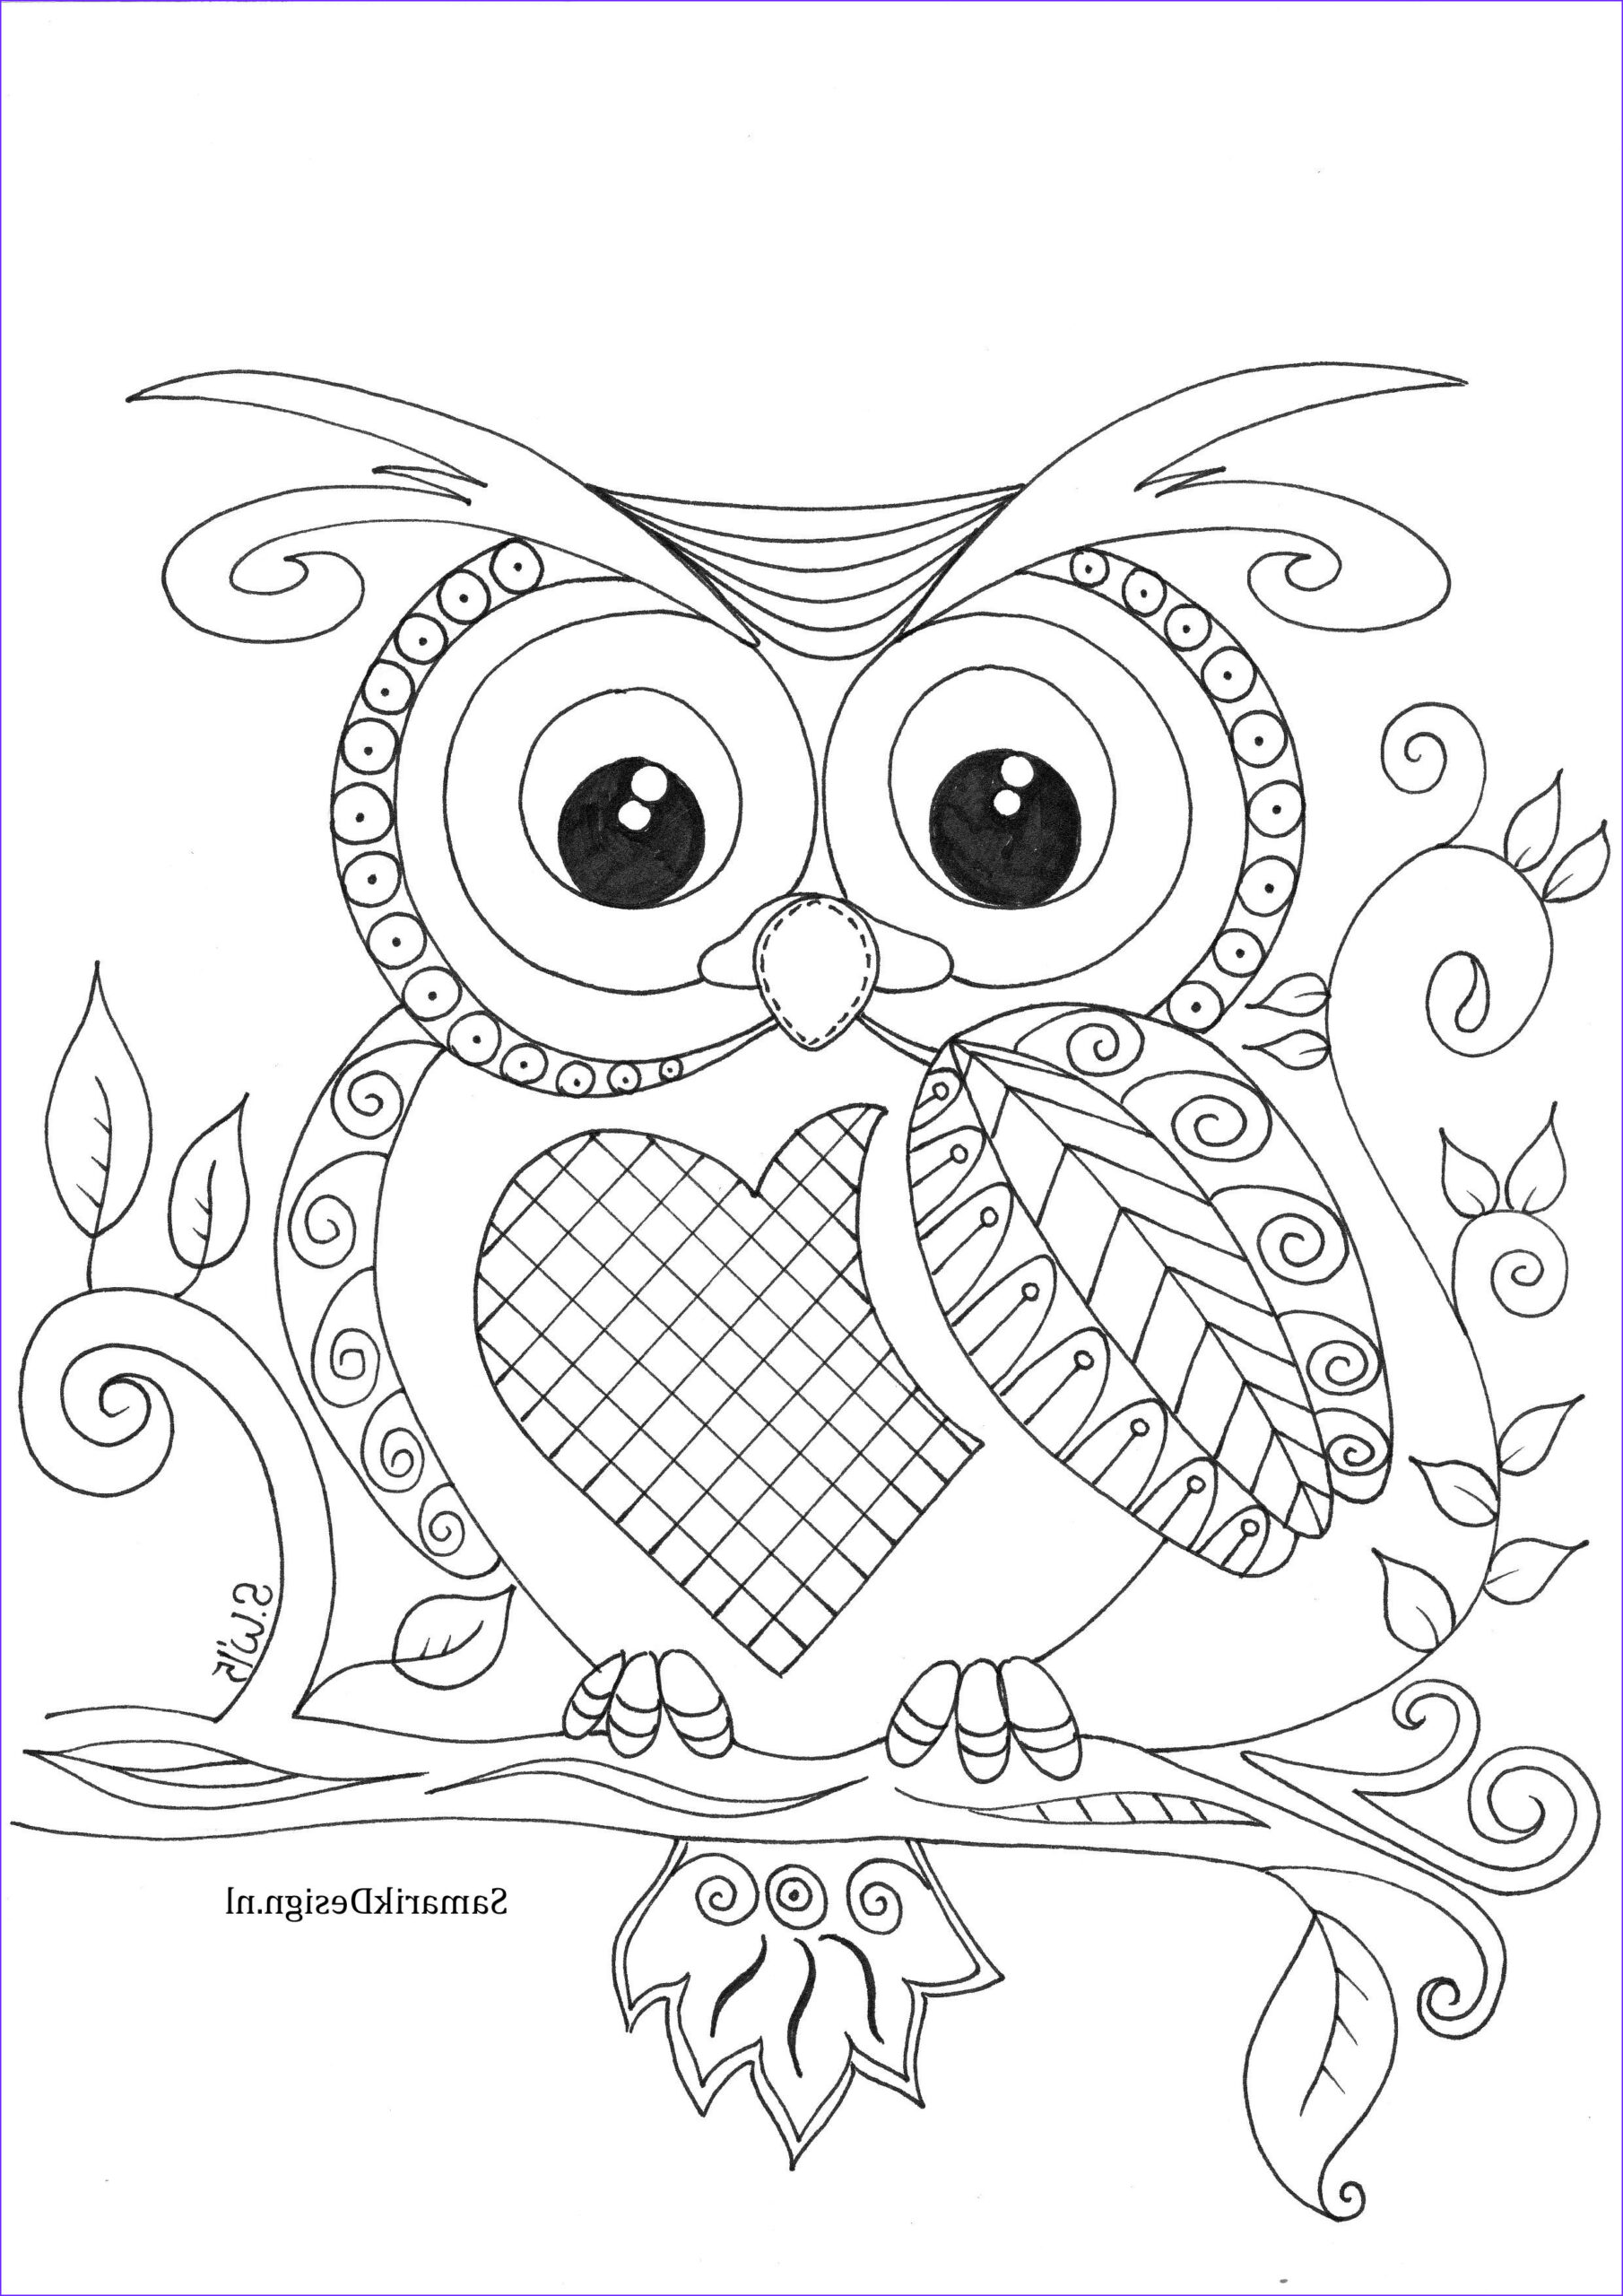 Owl Coloring Pages for Adults Luxury Photography 08c331f15e1b130a6beca4c243f21c8a 2480×3507